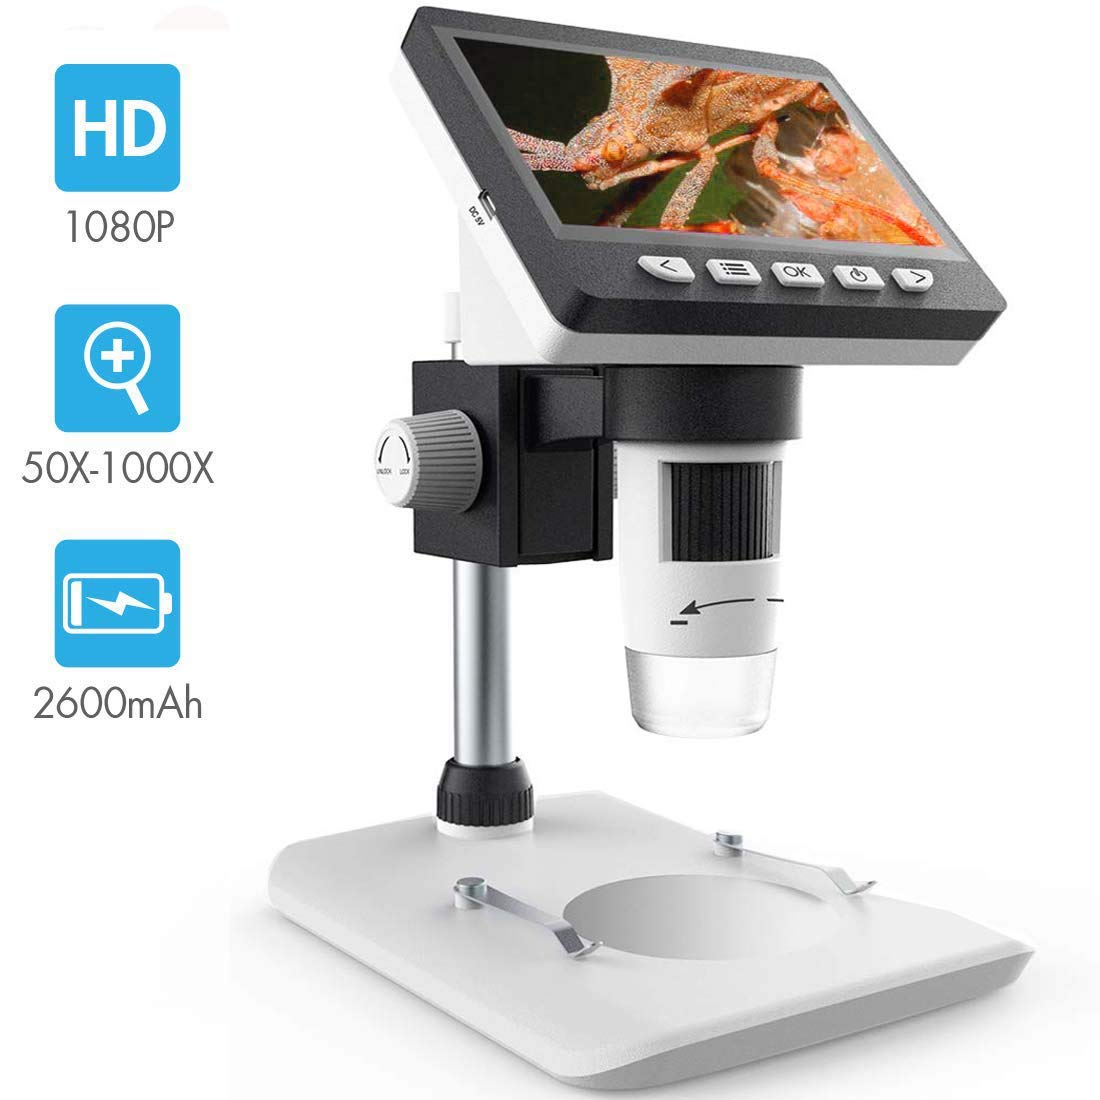 LCD Digital Microscope, SKYBASIC 4.3 inch 50X-1000X Magnification Zoom HD 1080P 2 Megapixels Compound 2600 mAh Battery USB Microscope 8 Adjustable LED Light Video Camera Microscope with 8G TF Card by SKYBASIC